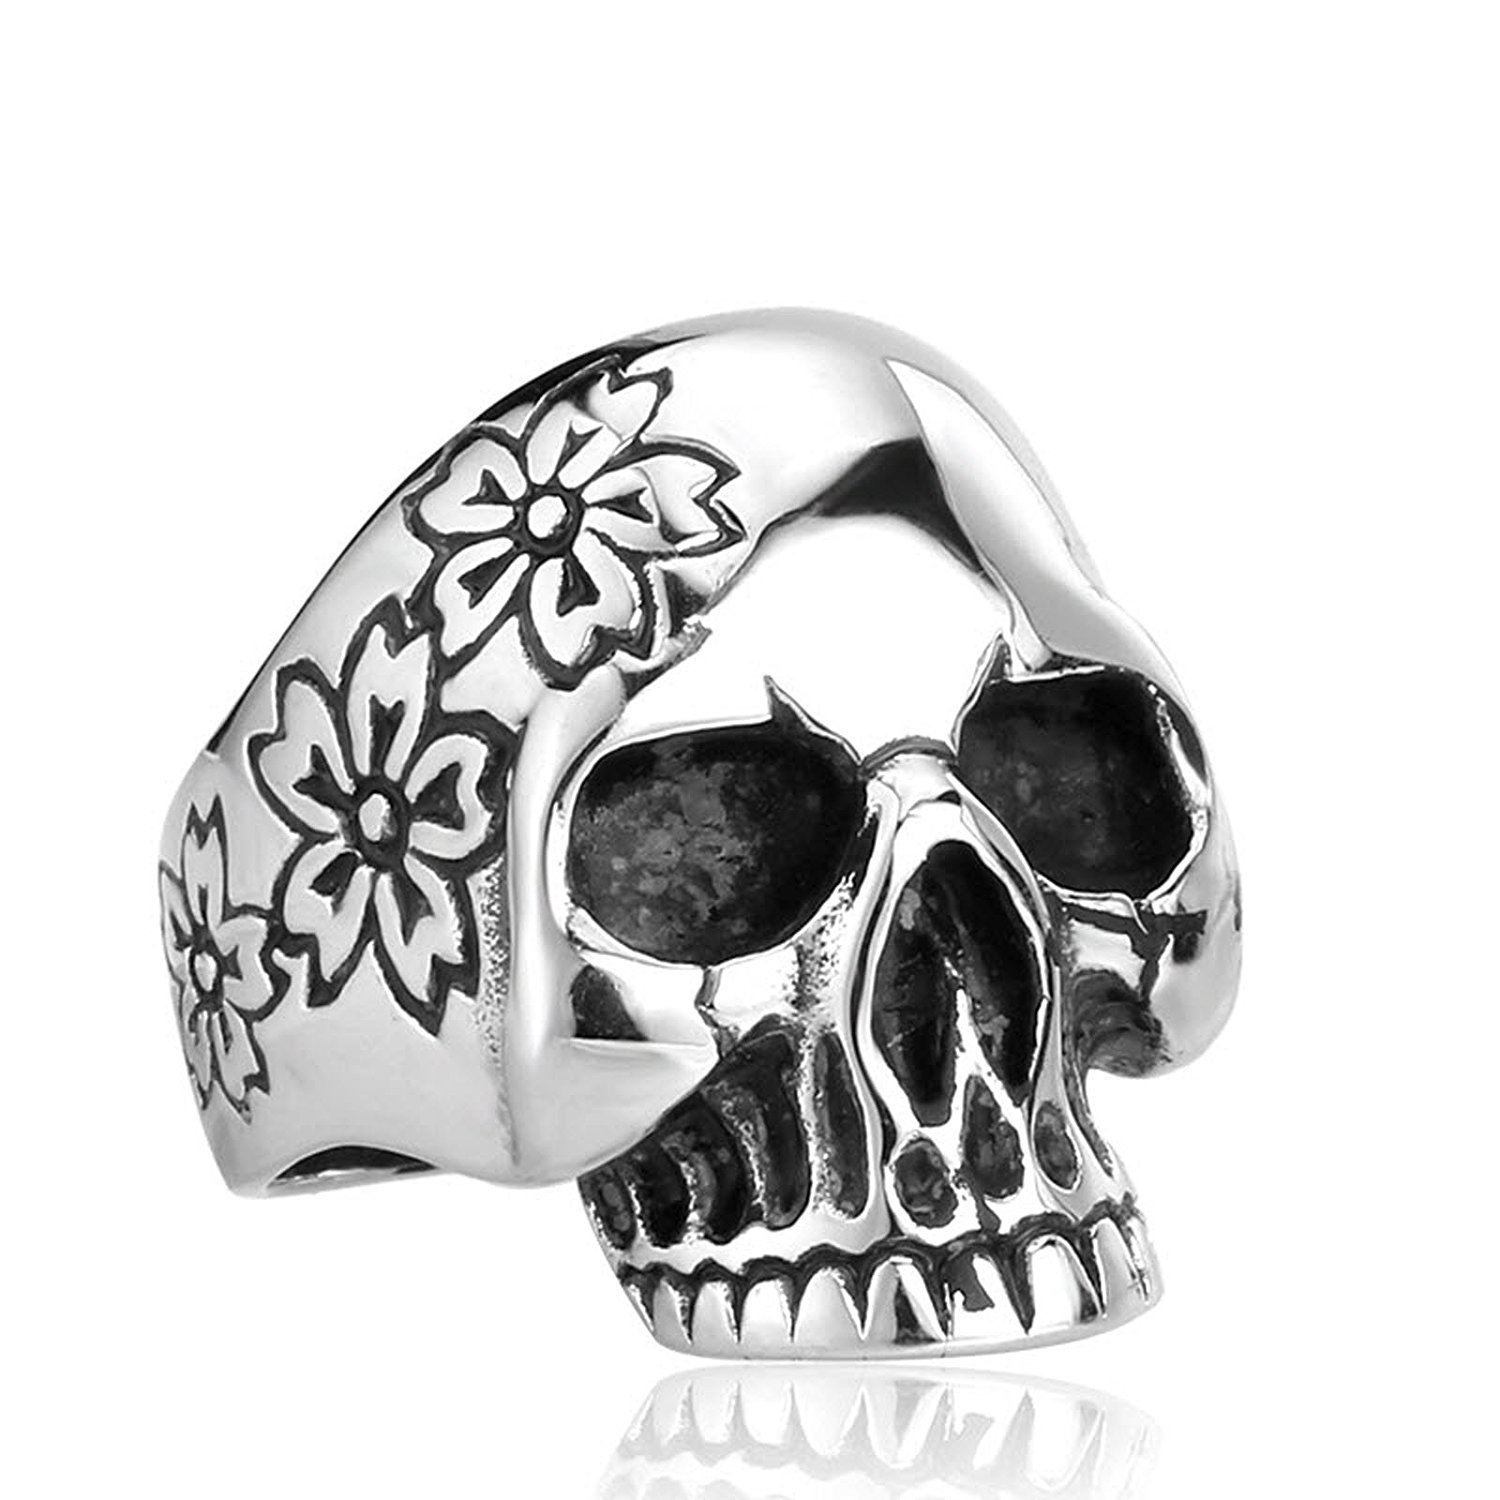 helmet army ring war military ii and jewelry rings cross sterling skeleton watch skull bone gothic silver world